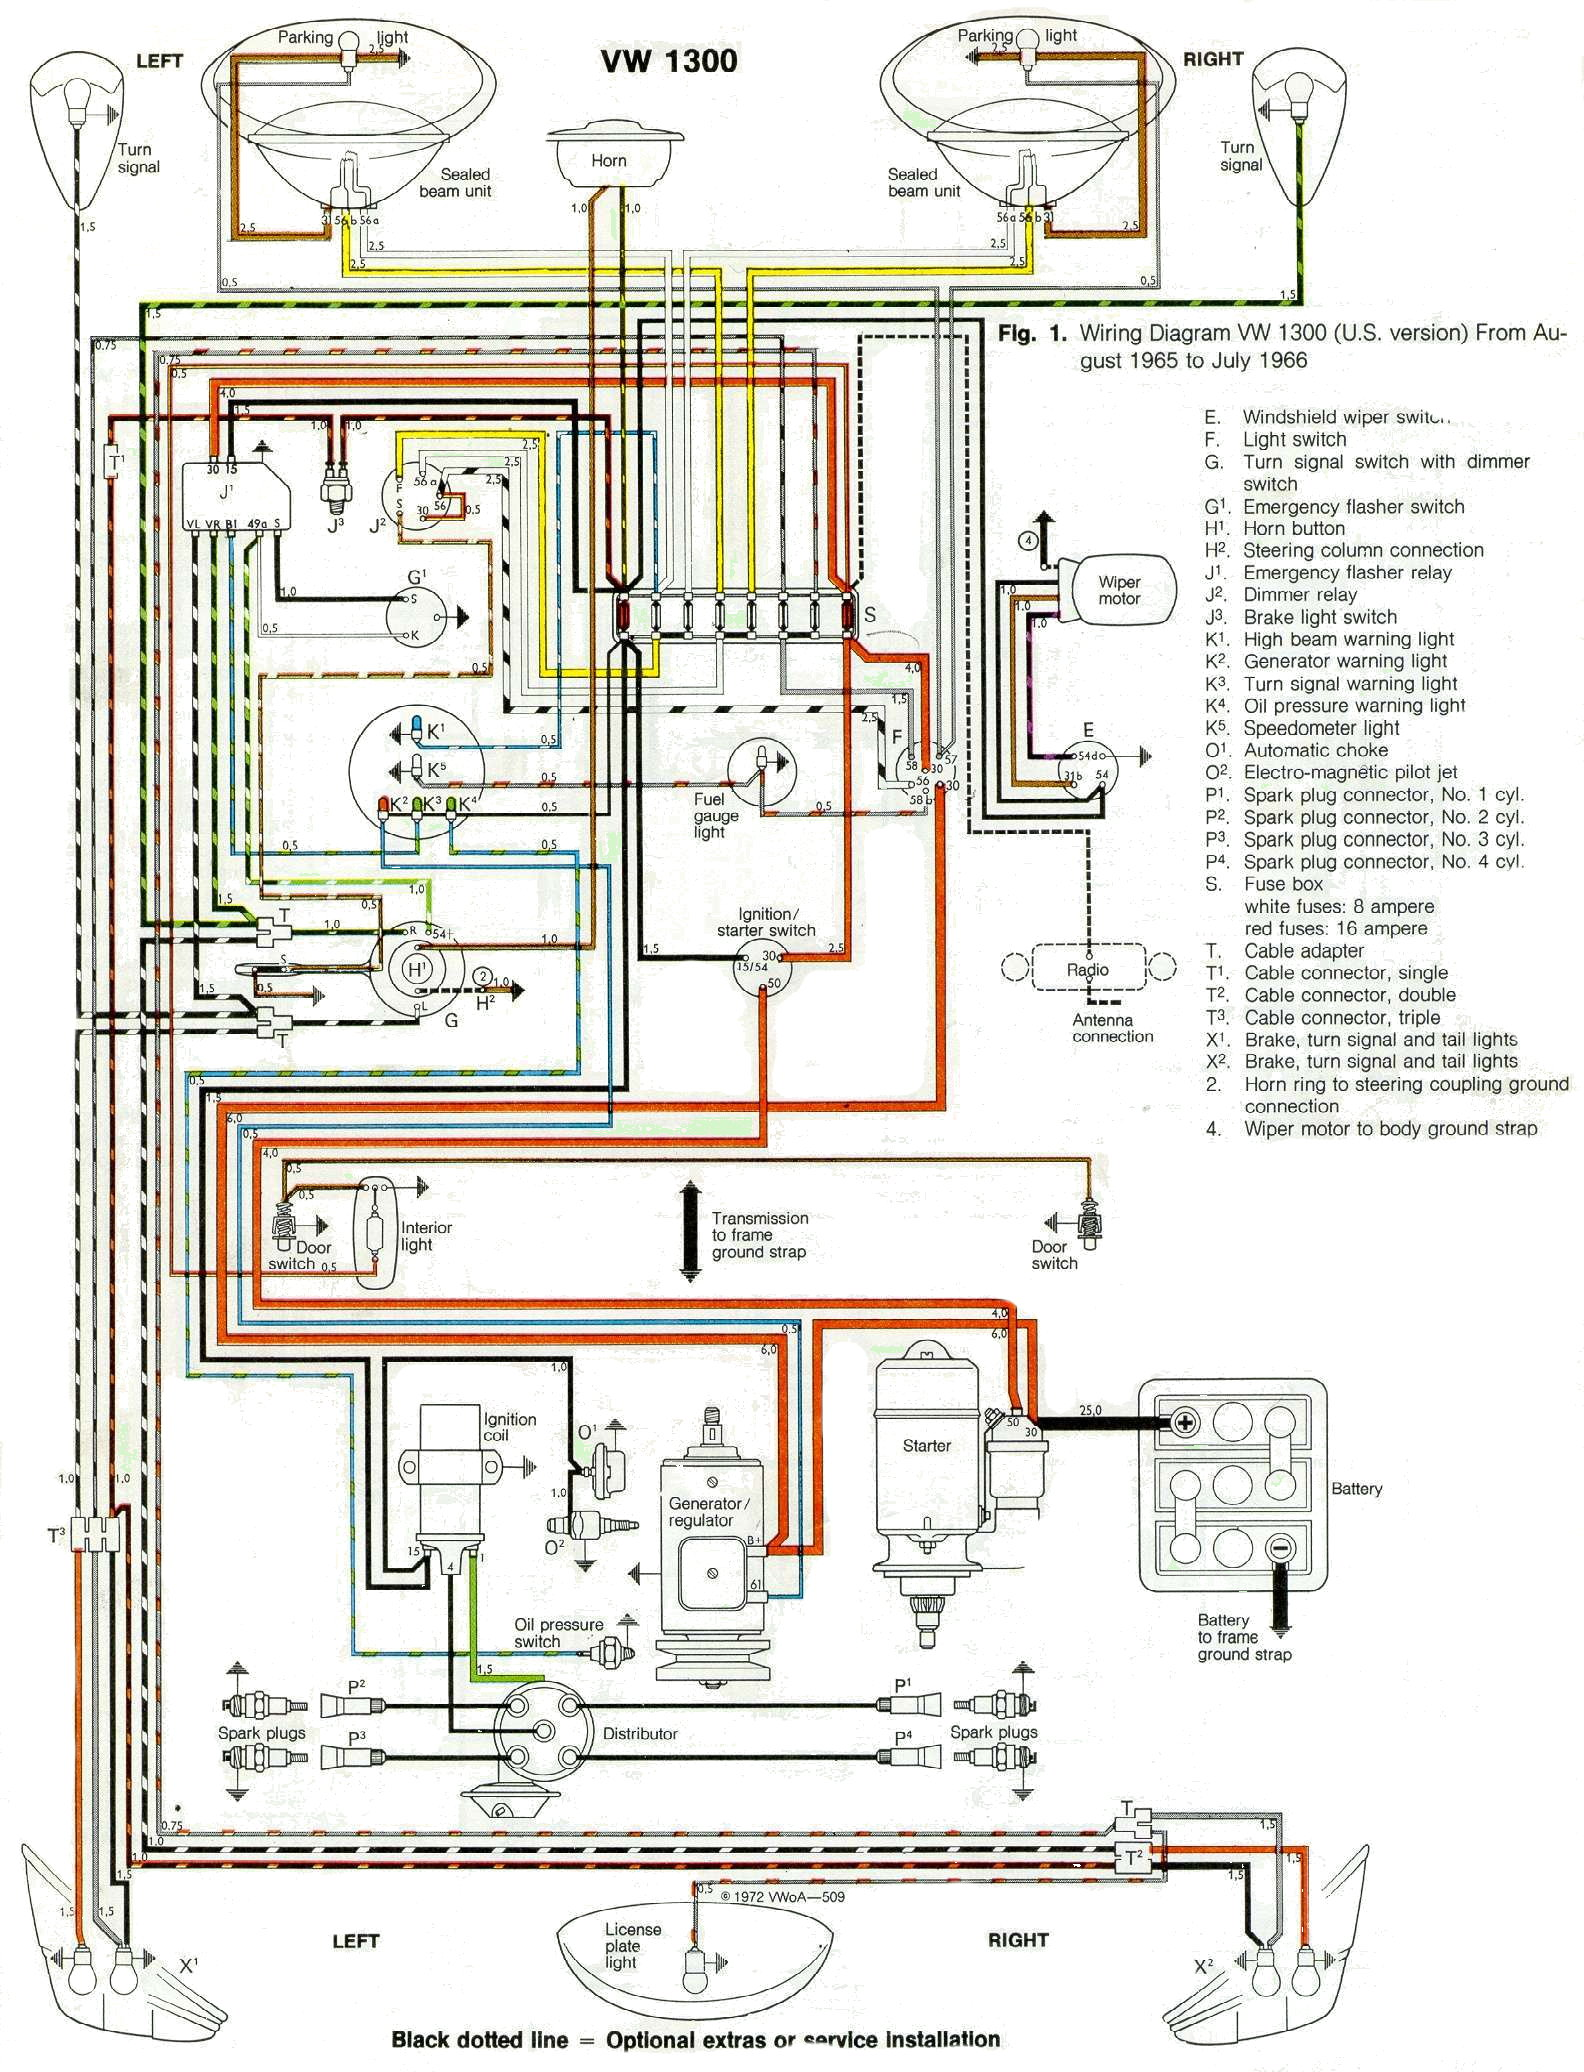 1966 Wiring 1966 wiring diagram vw bug wiring diagram at cos-gaming.co